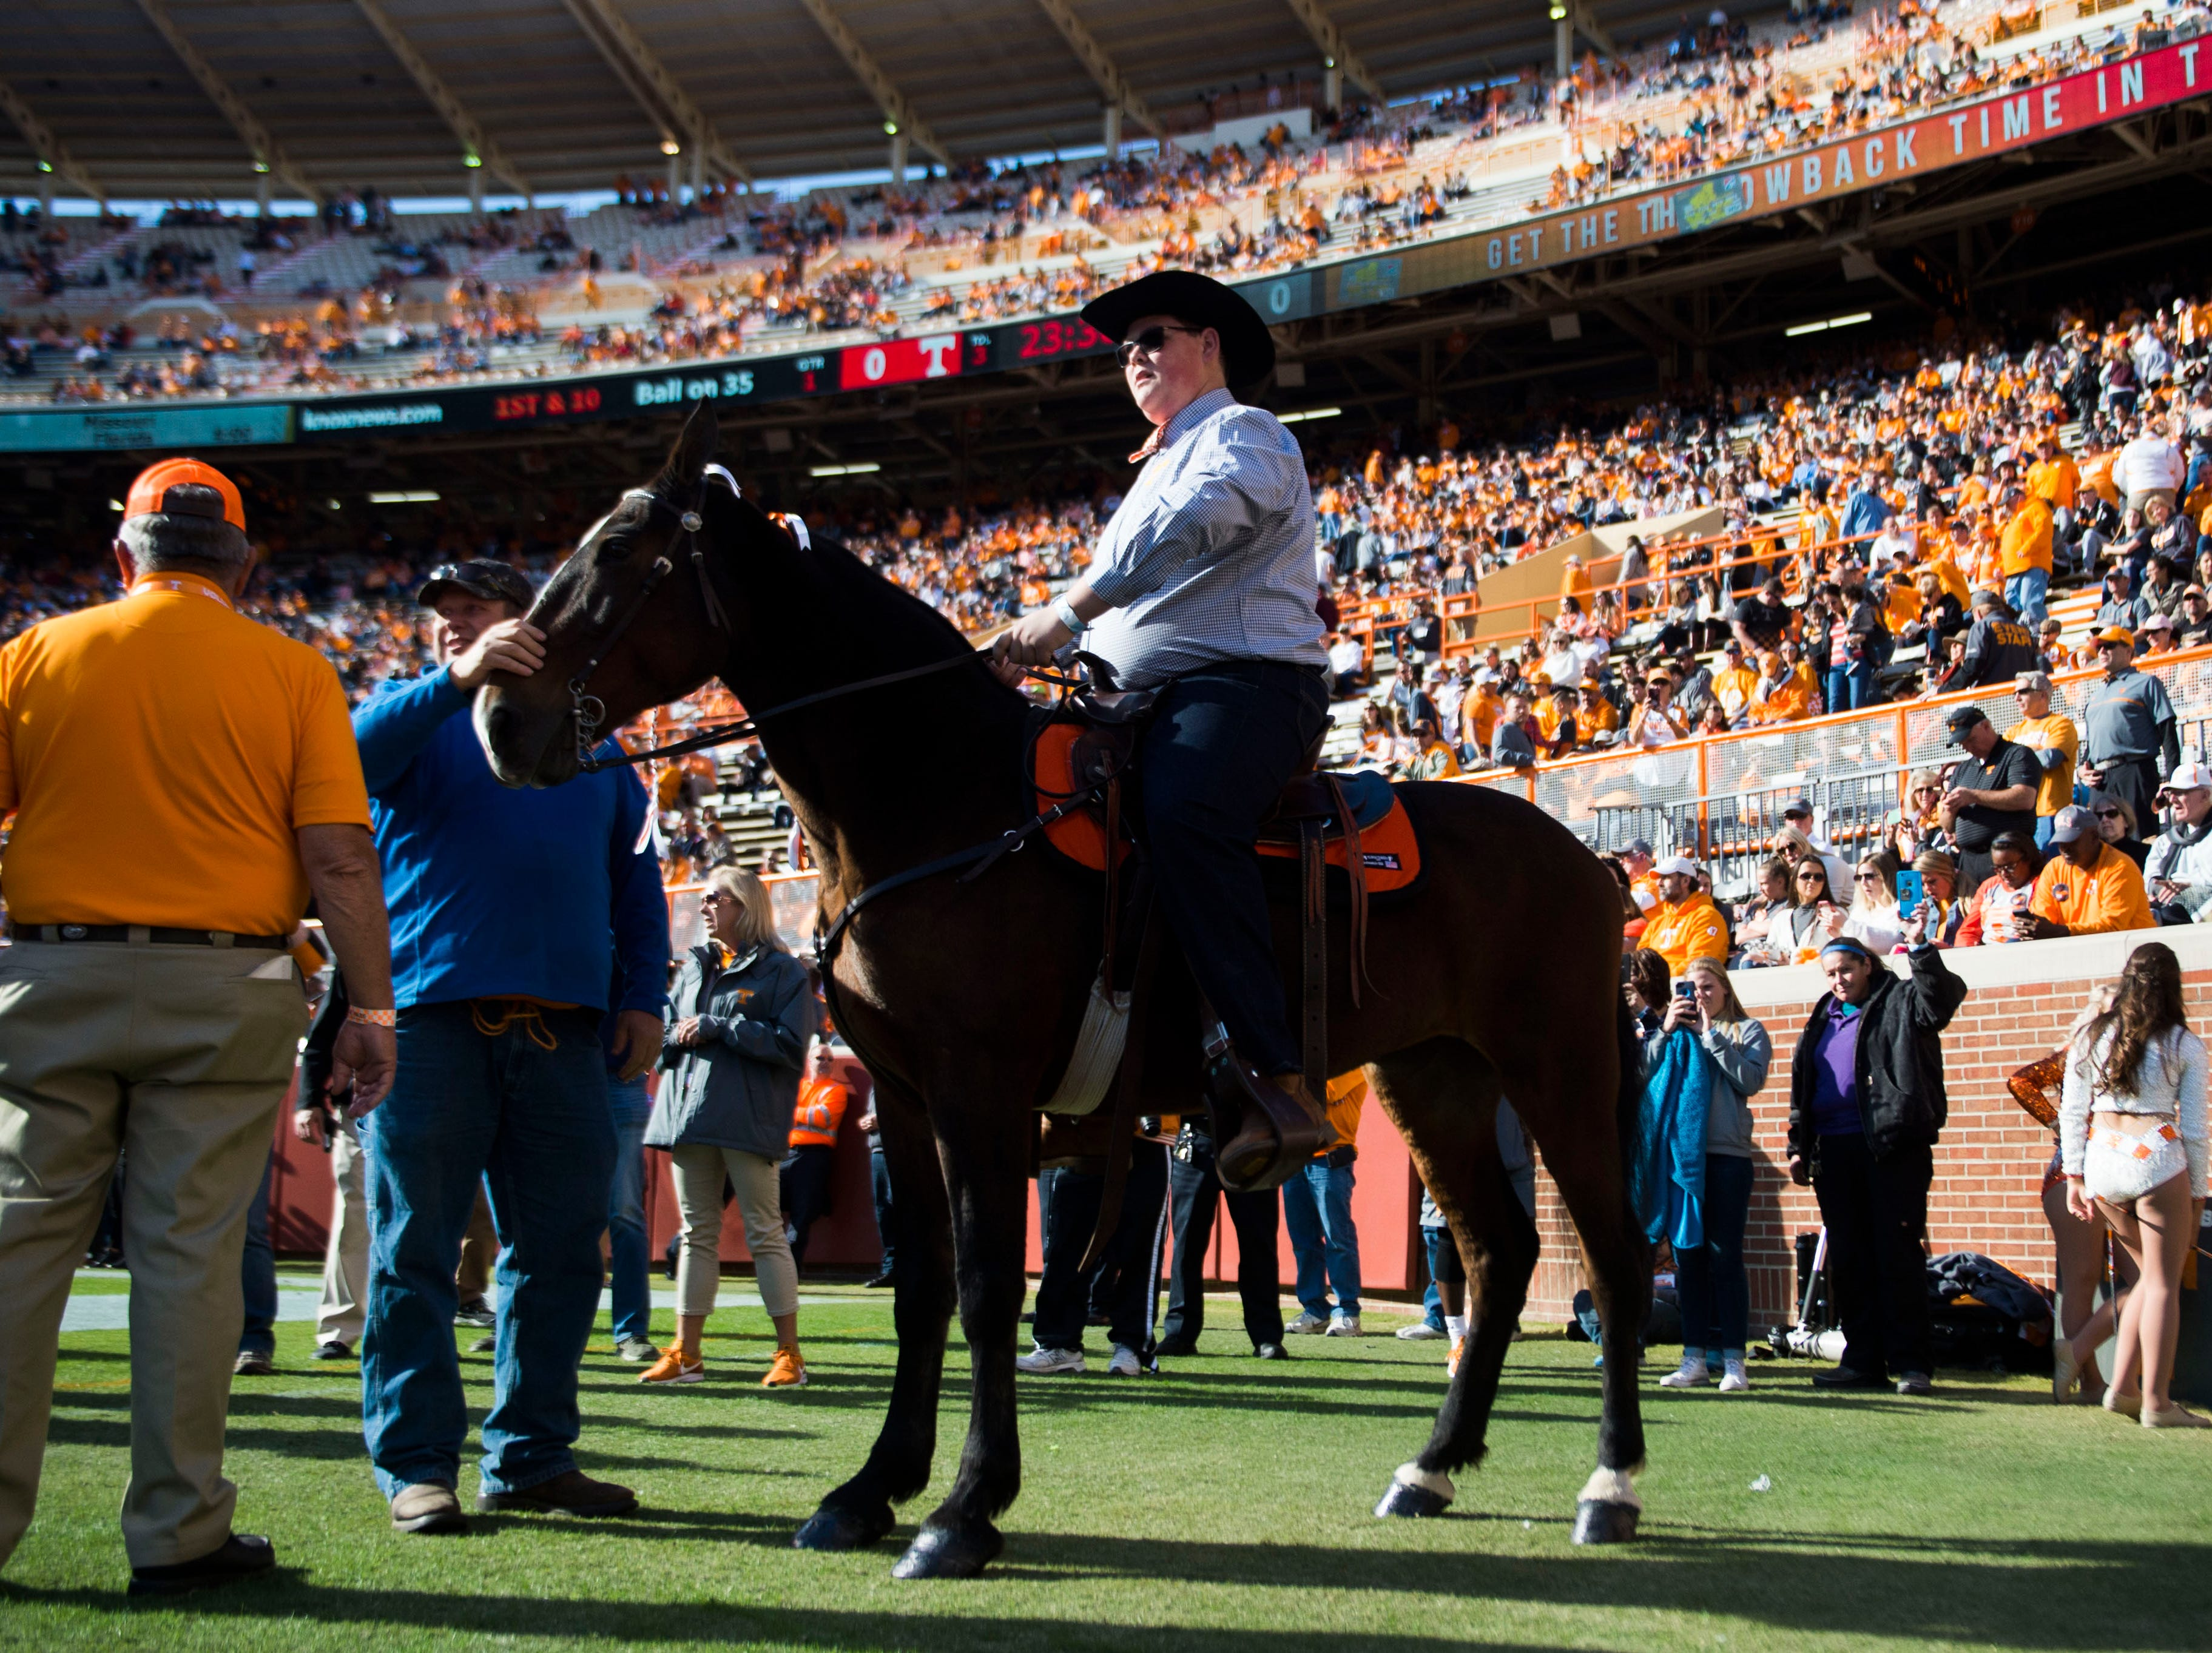 The Tennessee Walking Horse and it's rider prepare to ride on the field before the homecoming game between Tennessee and Charlotte outside of Neyland Stadium Saturday, Nov. 3, 2018.